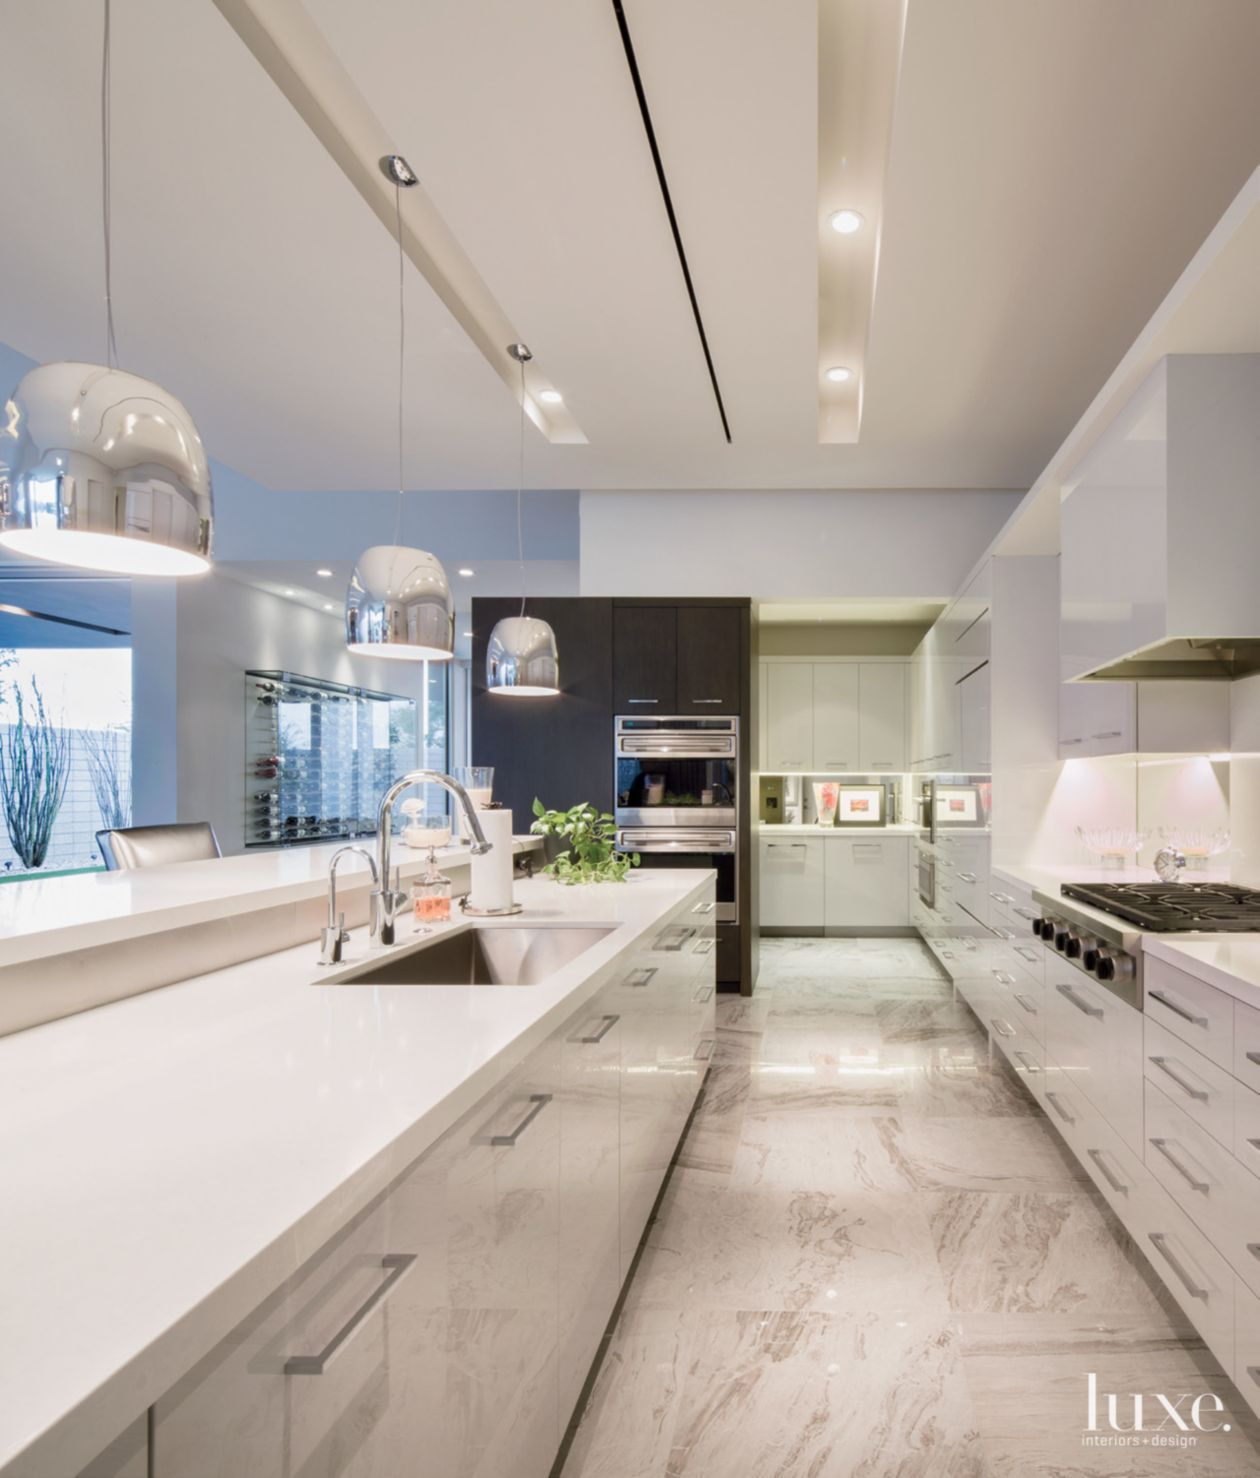 A sleek white palette defines each of these luxury home kitchens